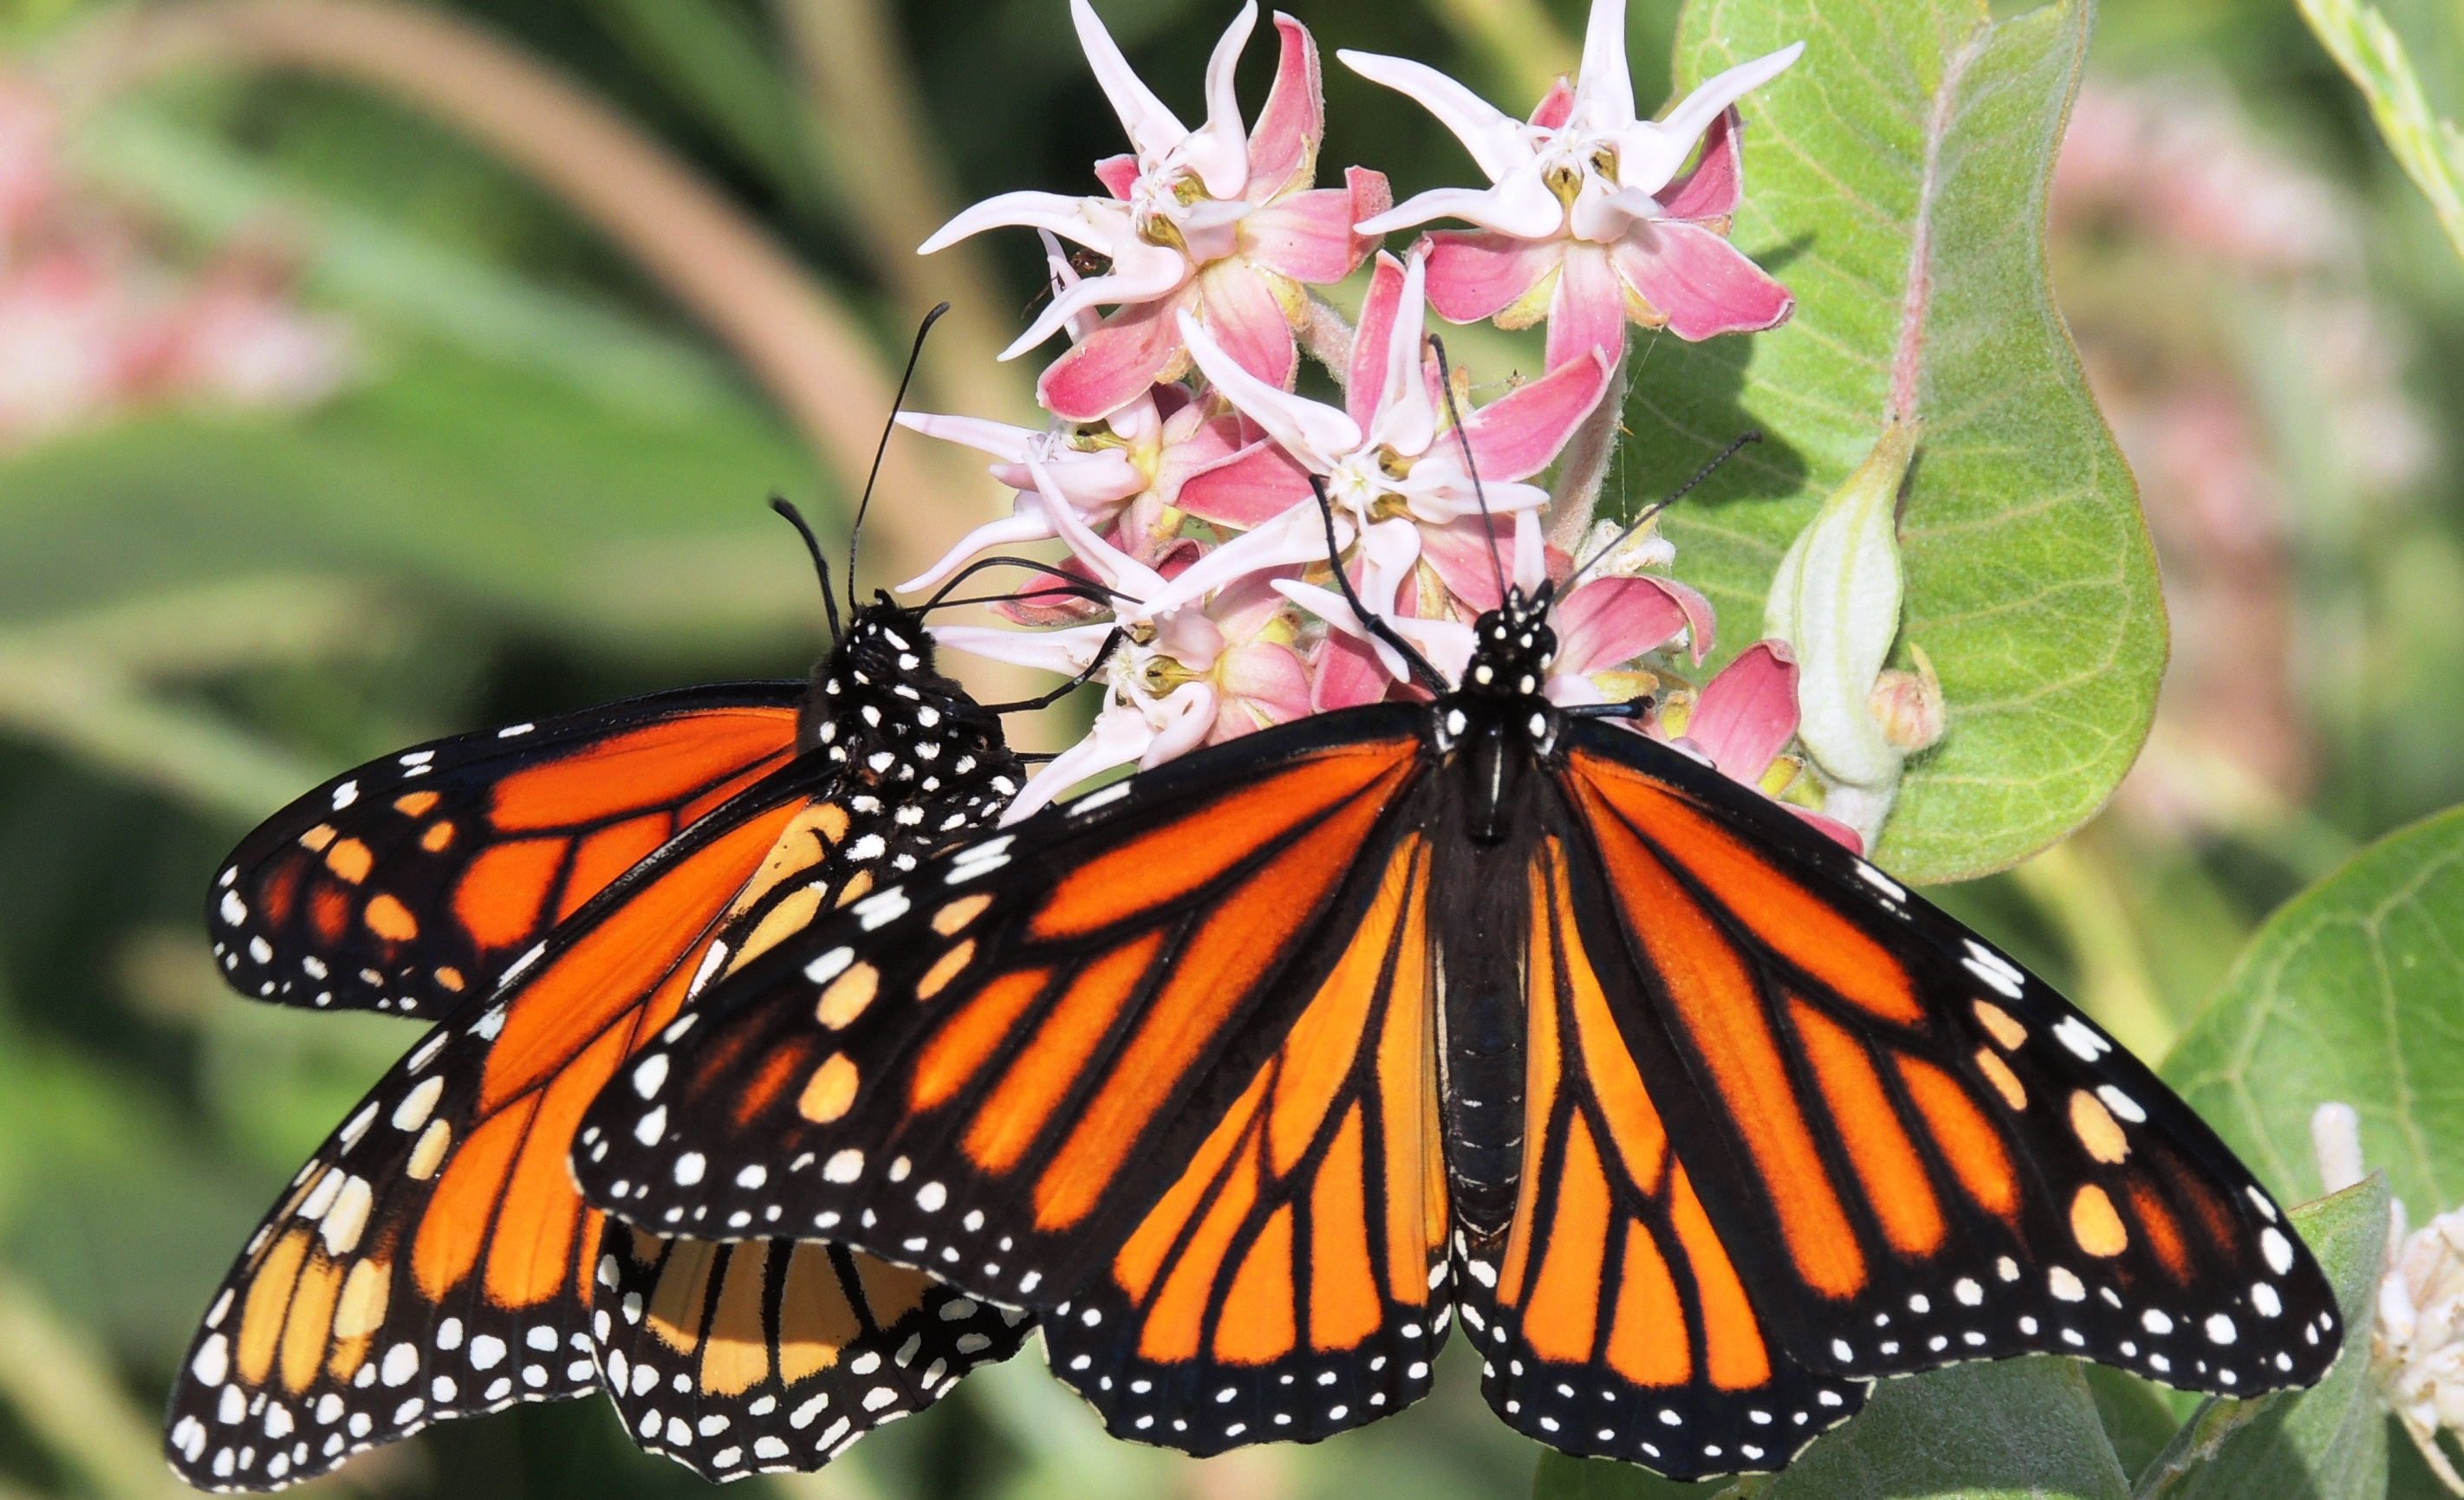 Declining Monarch Butterfly Populations May Be Hard To